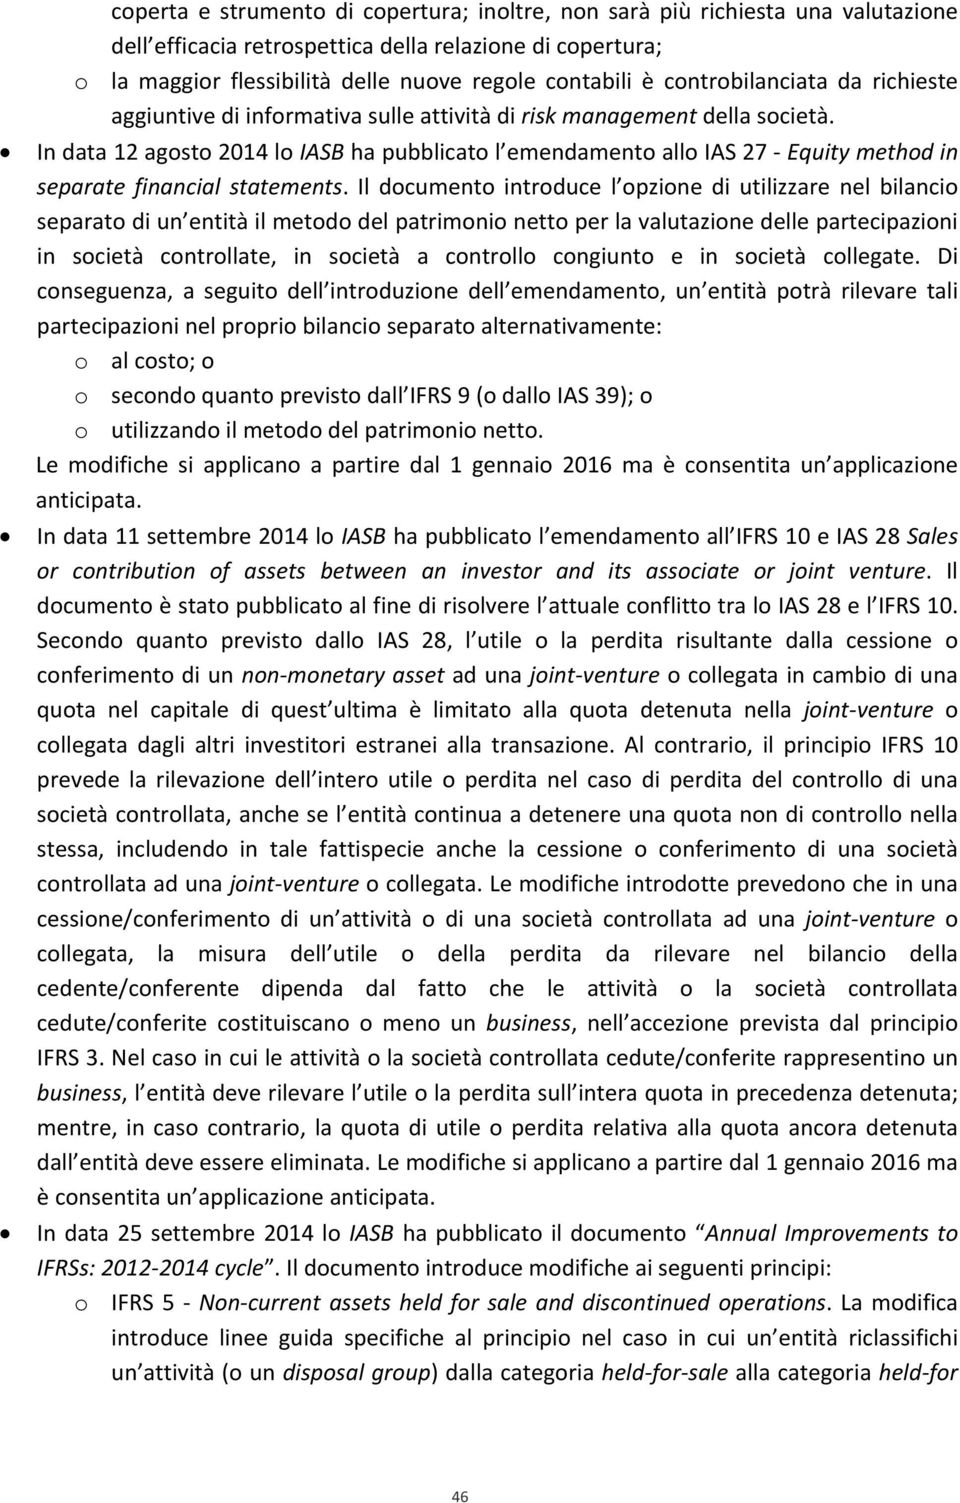 In data 12 agosto 2014 lo IASB ha pubblicato l emendamento allo IAS 27 Equity method in separate financial statements.